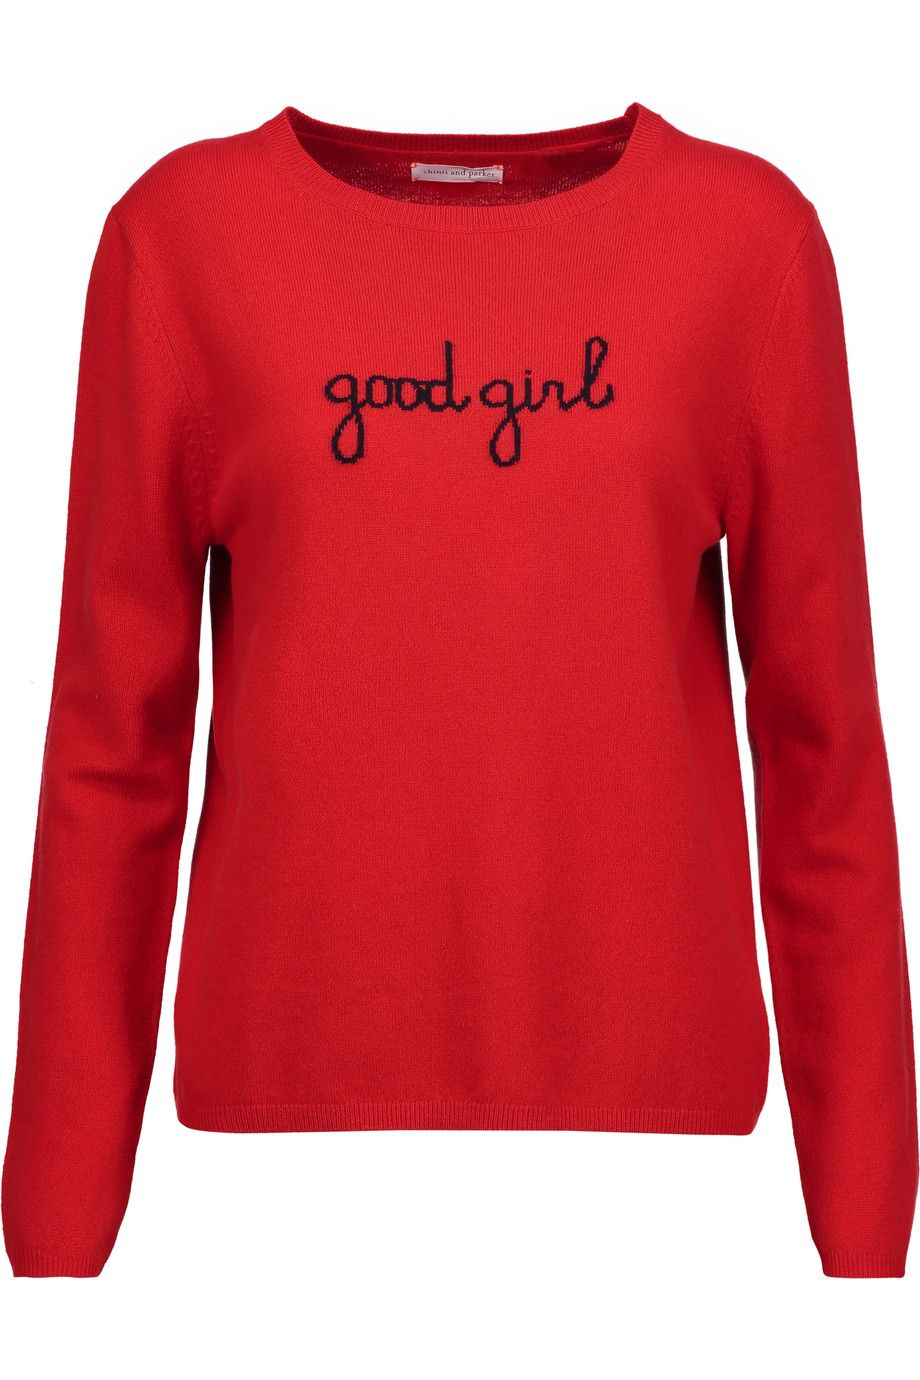 CHINTI AND PARKER Good Girl intarsia cashmere sweater ...